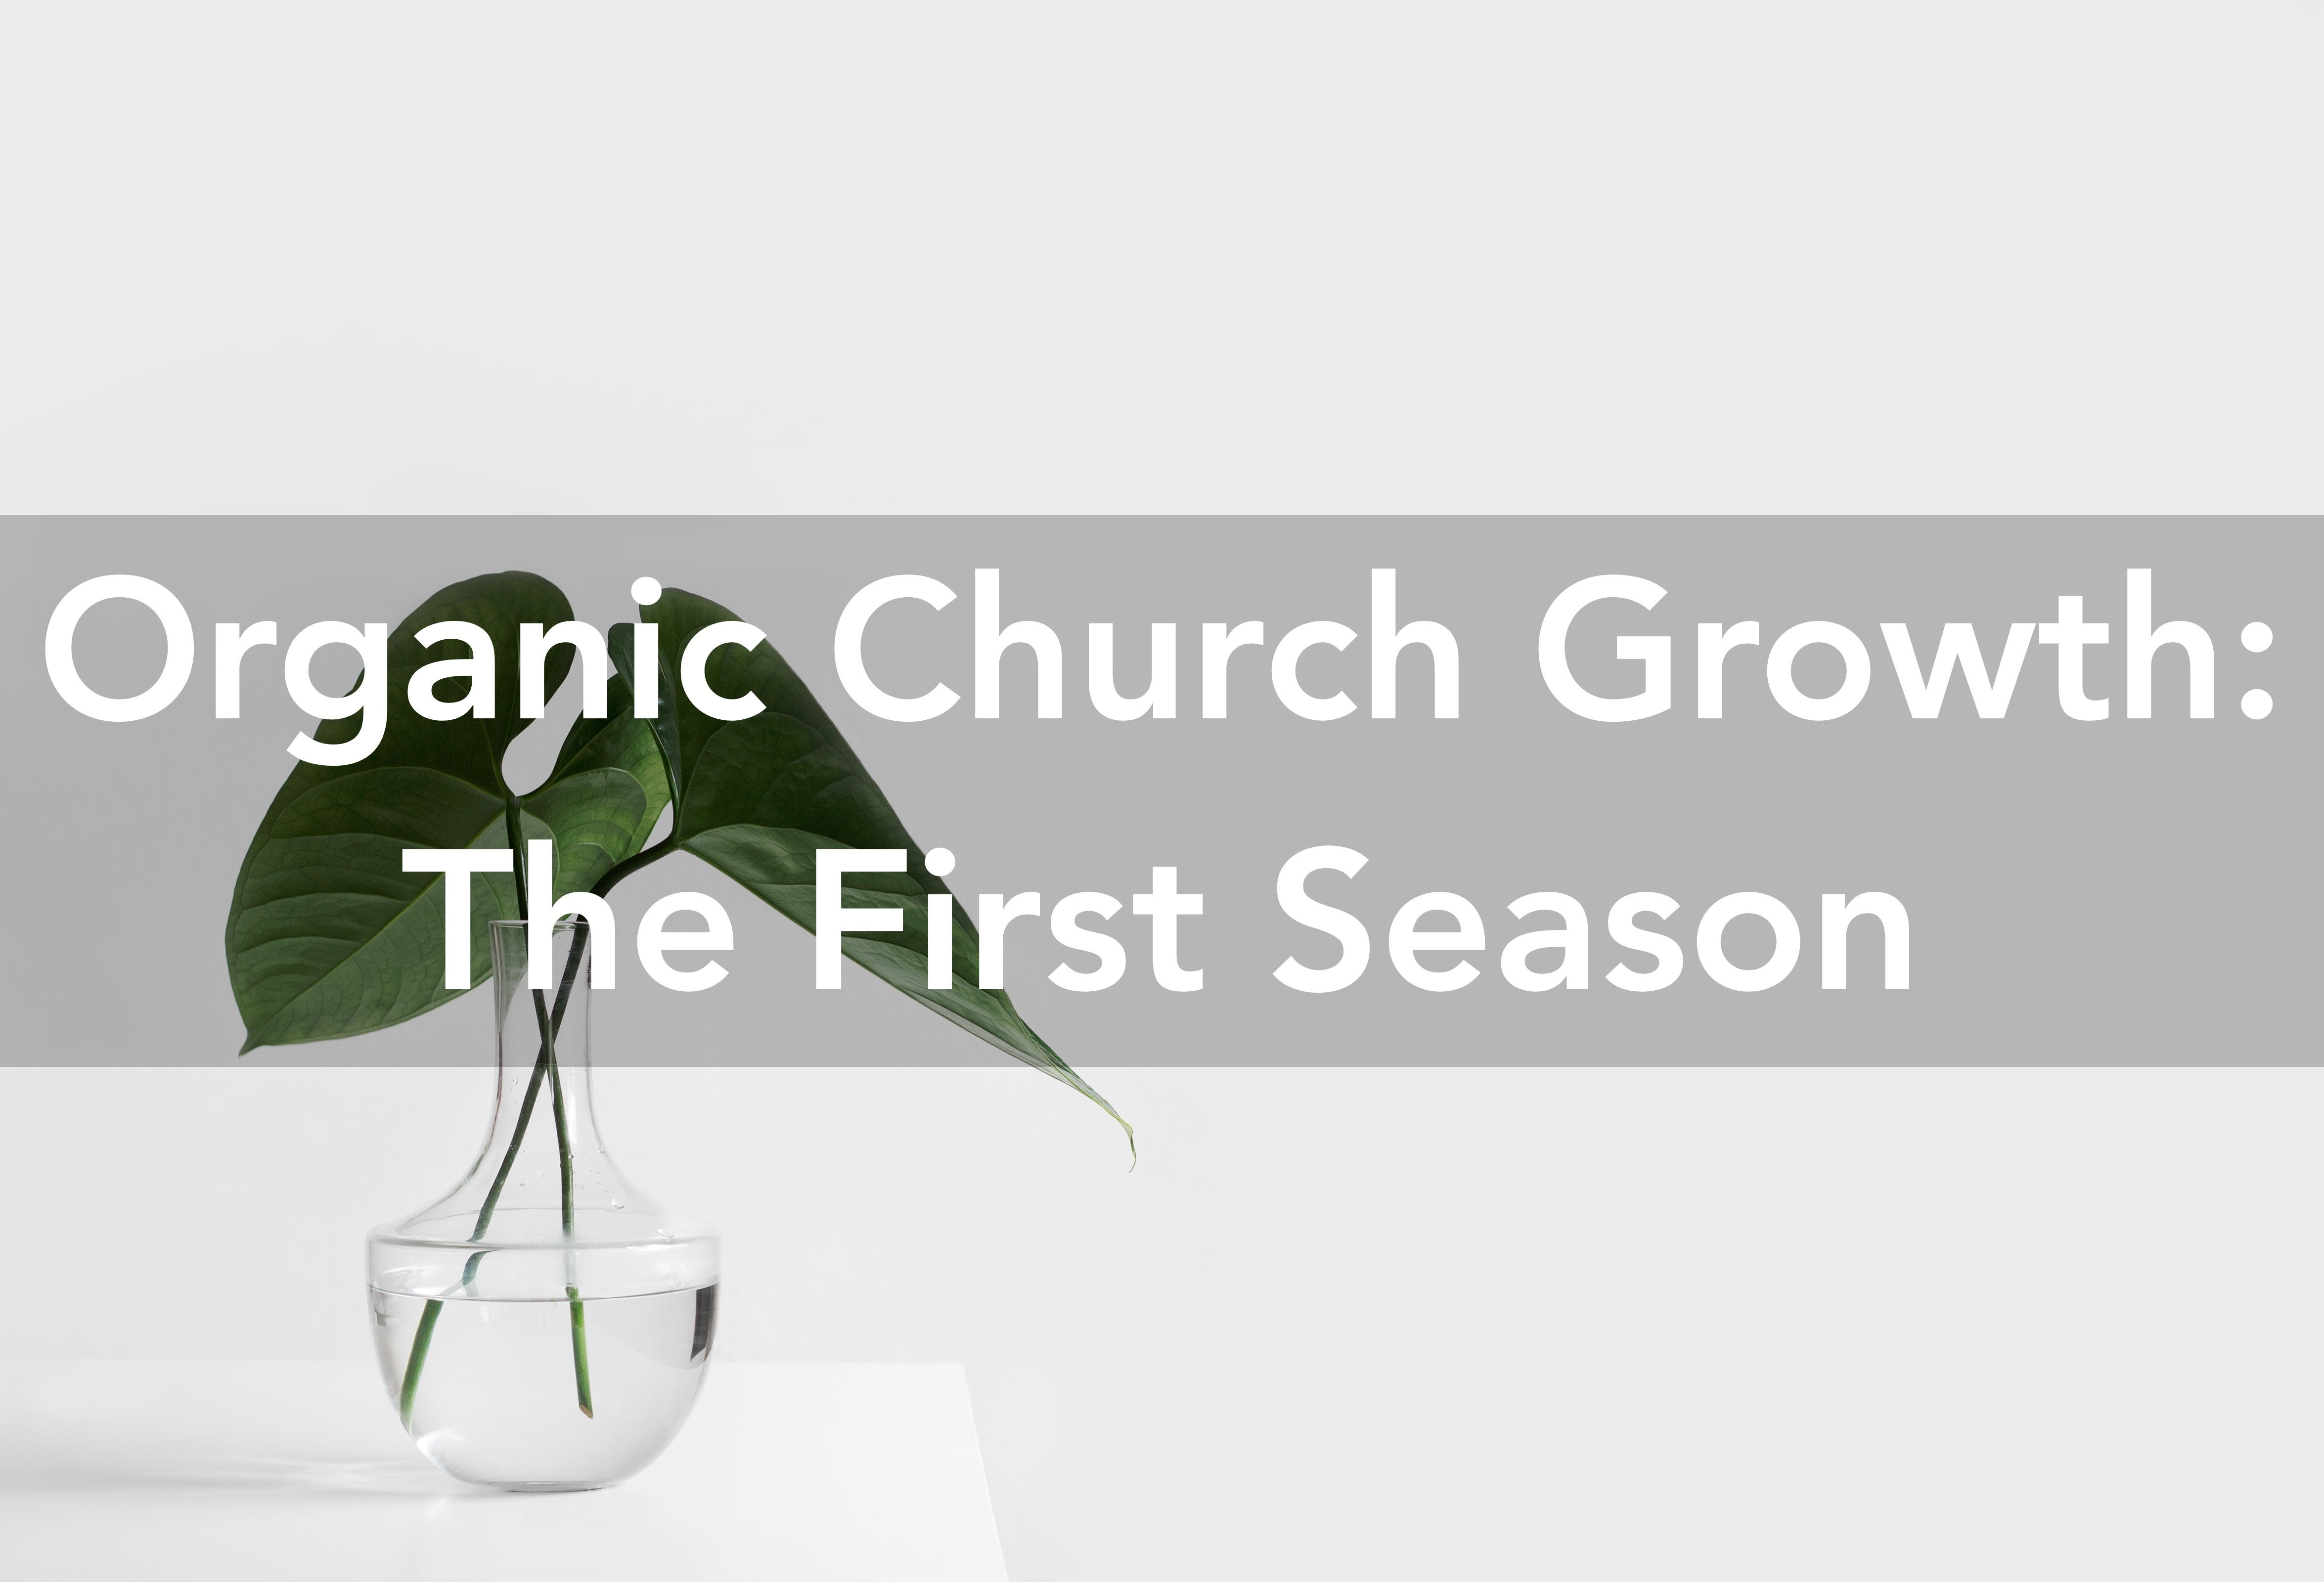 Organic Church Growth